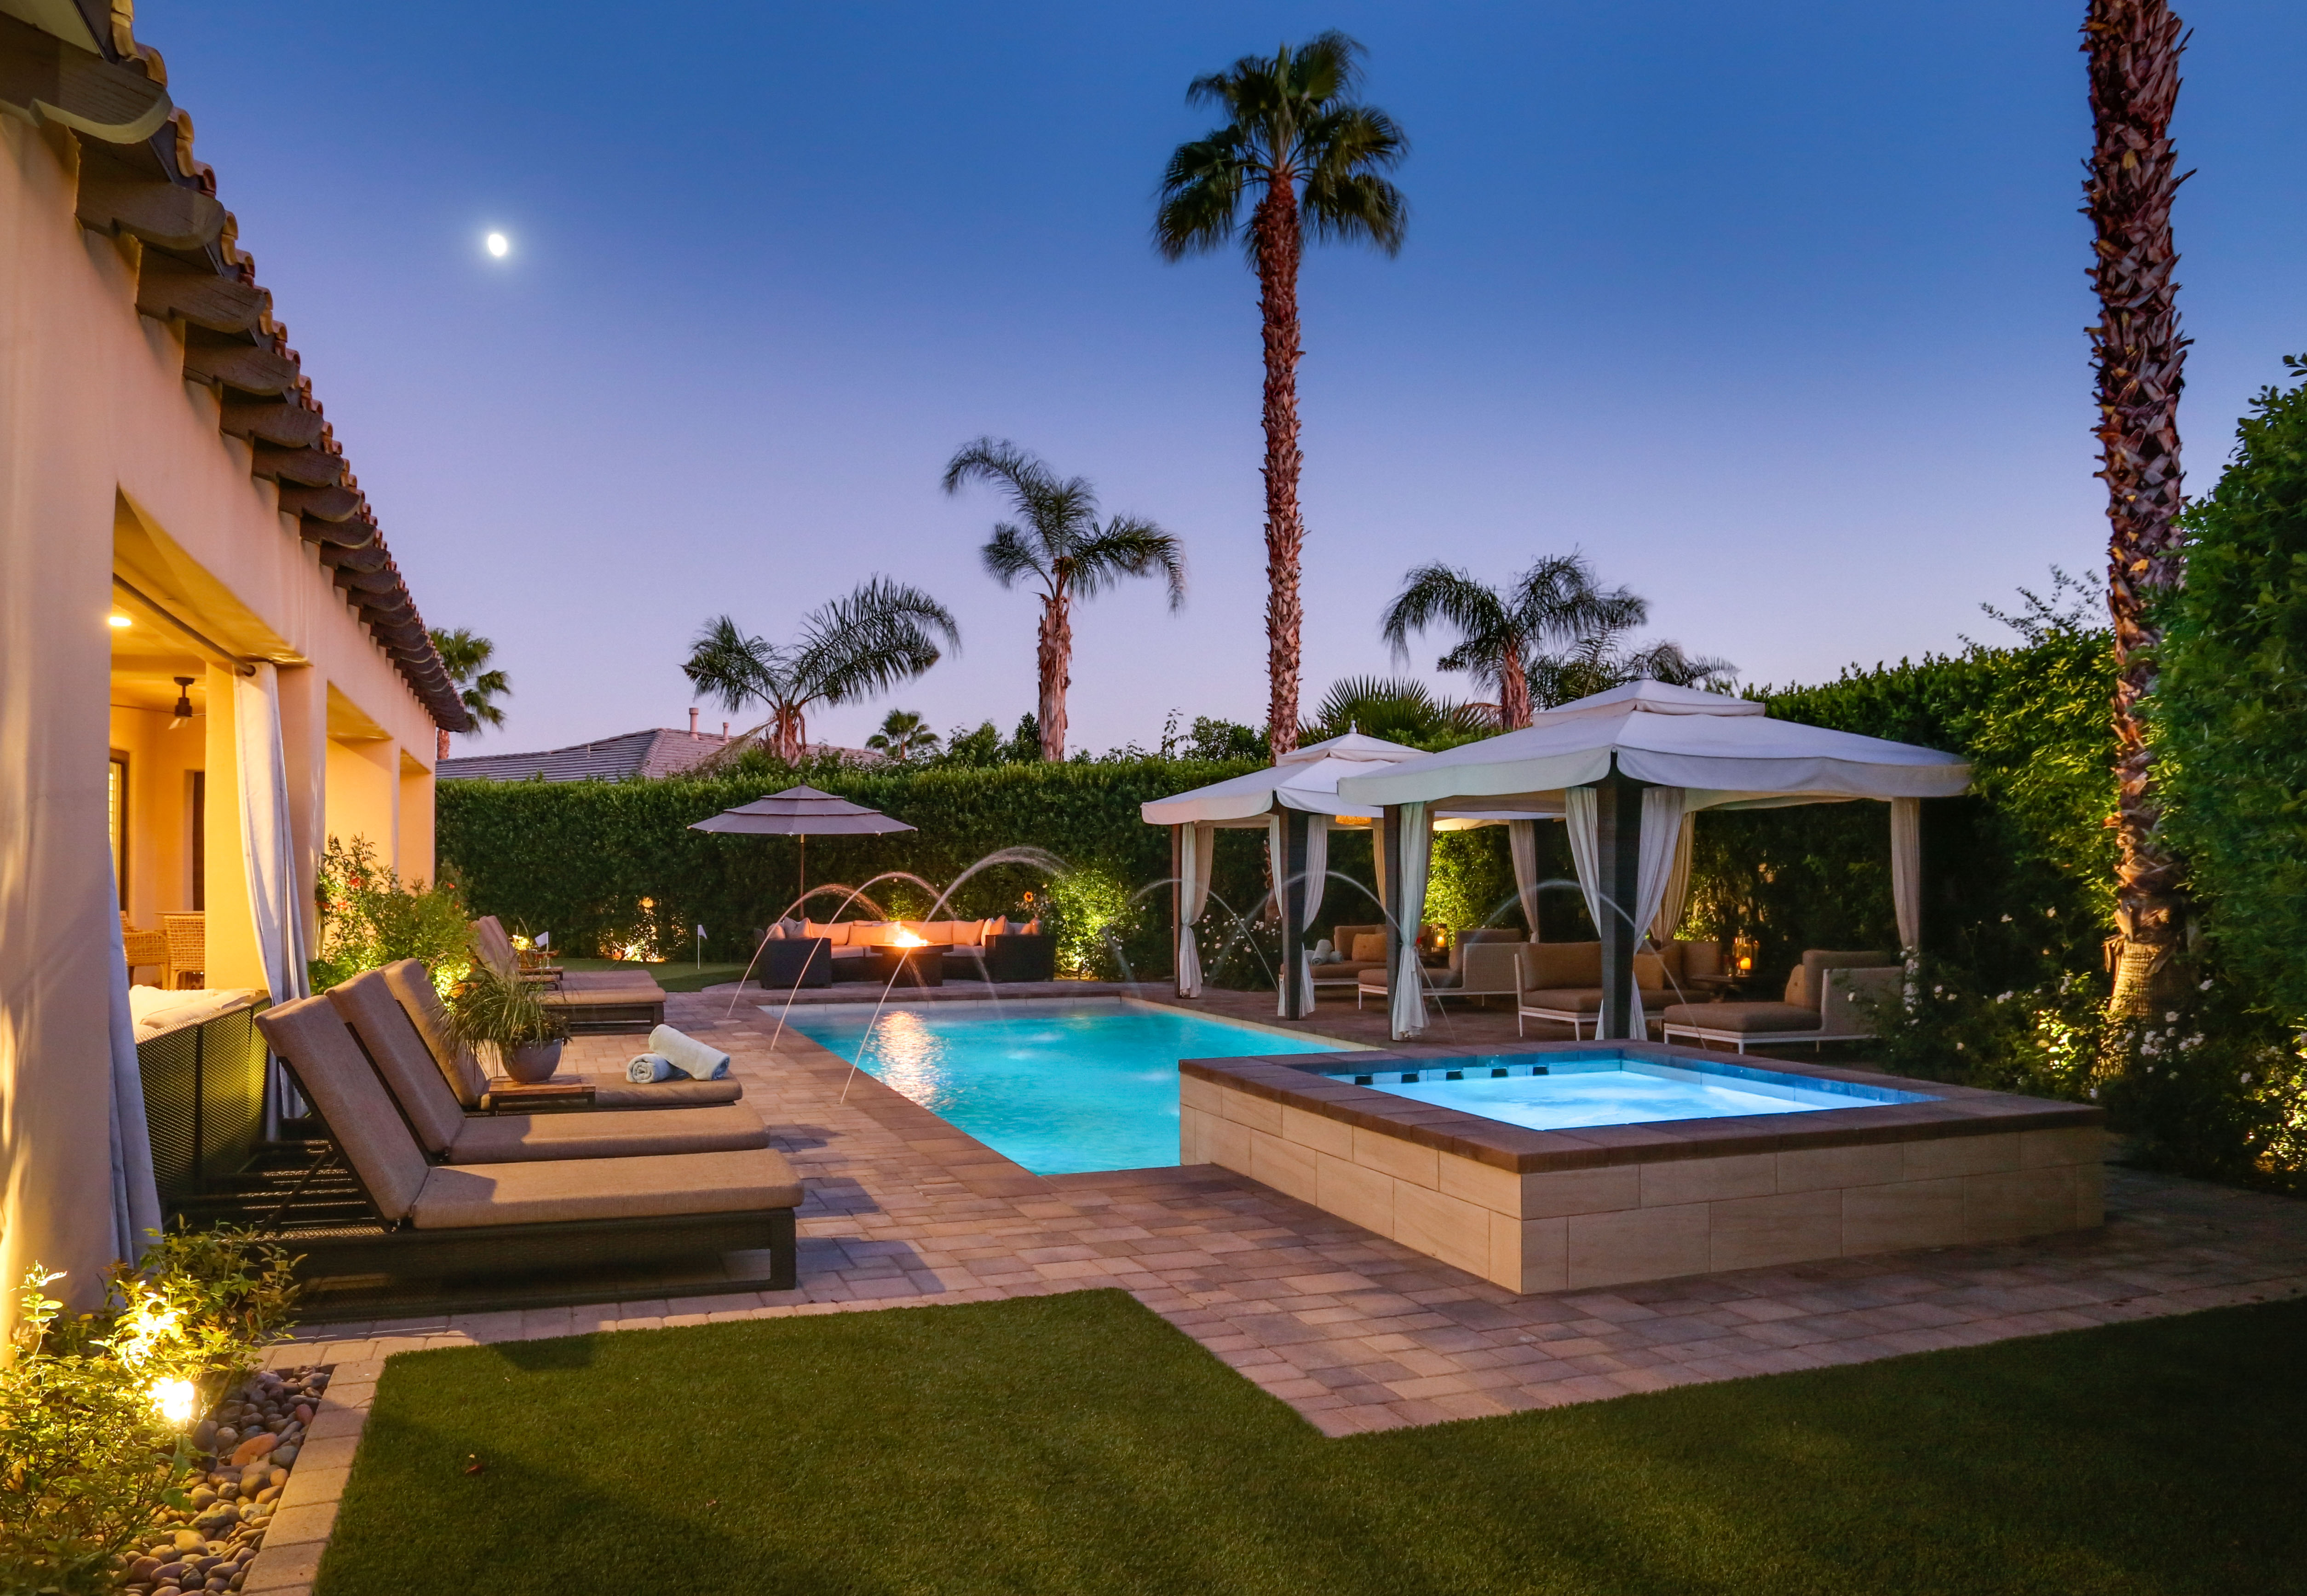 Indio CA Vacation Rental Welcome to Indio!